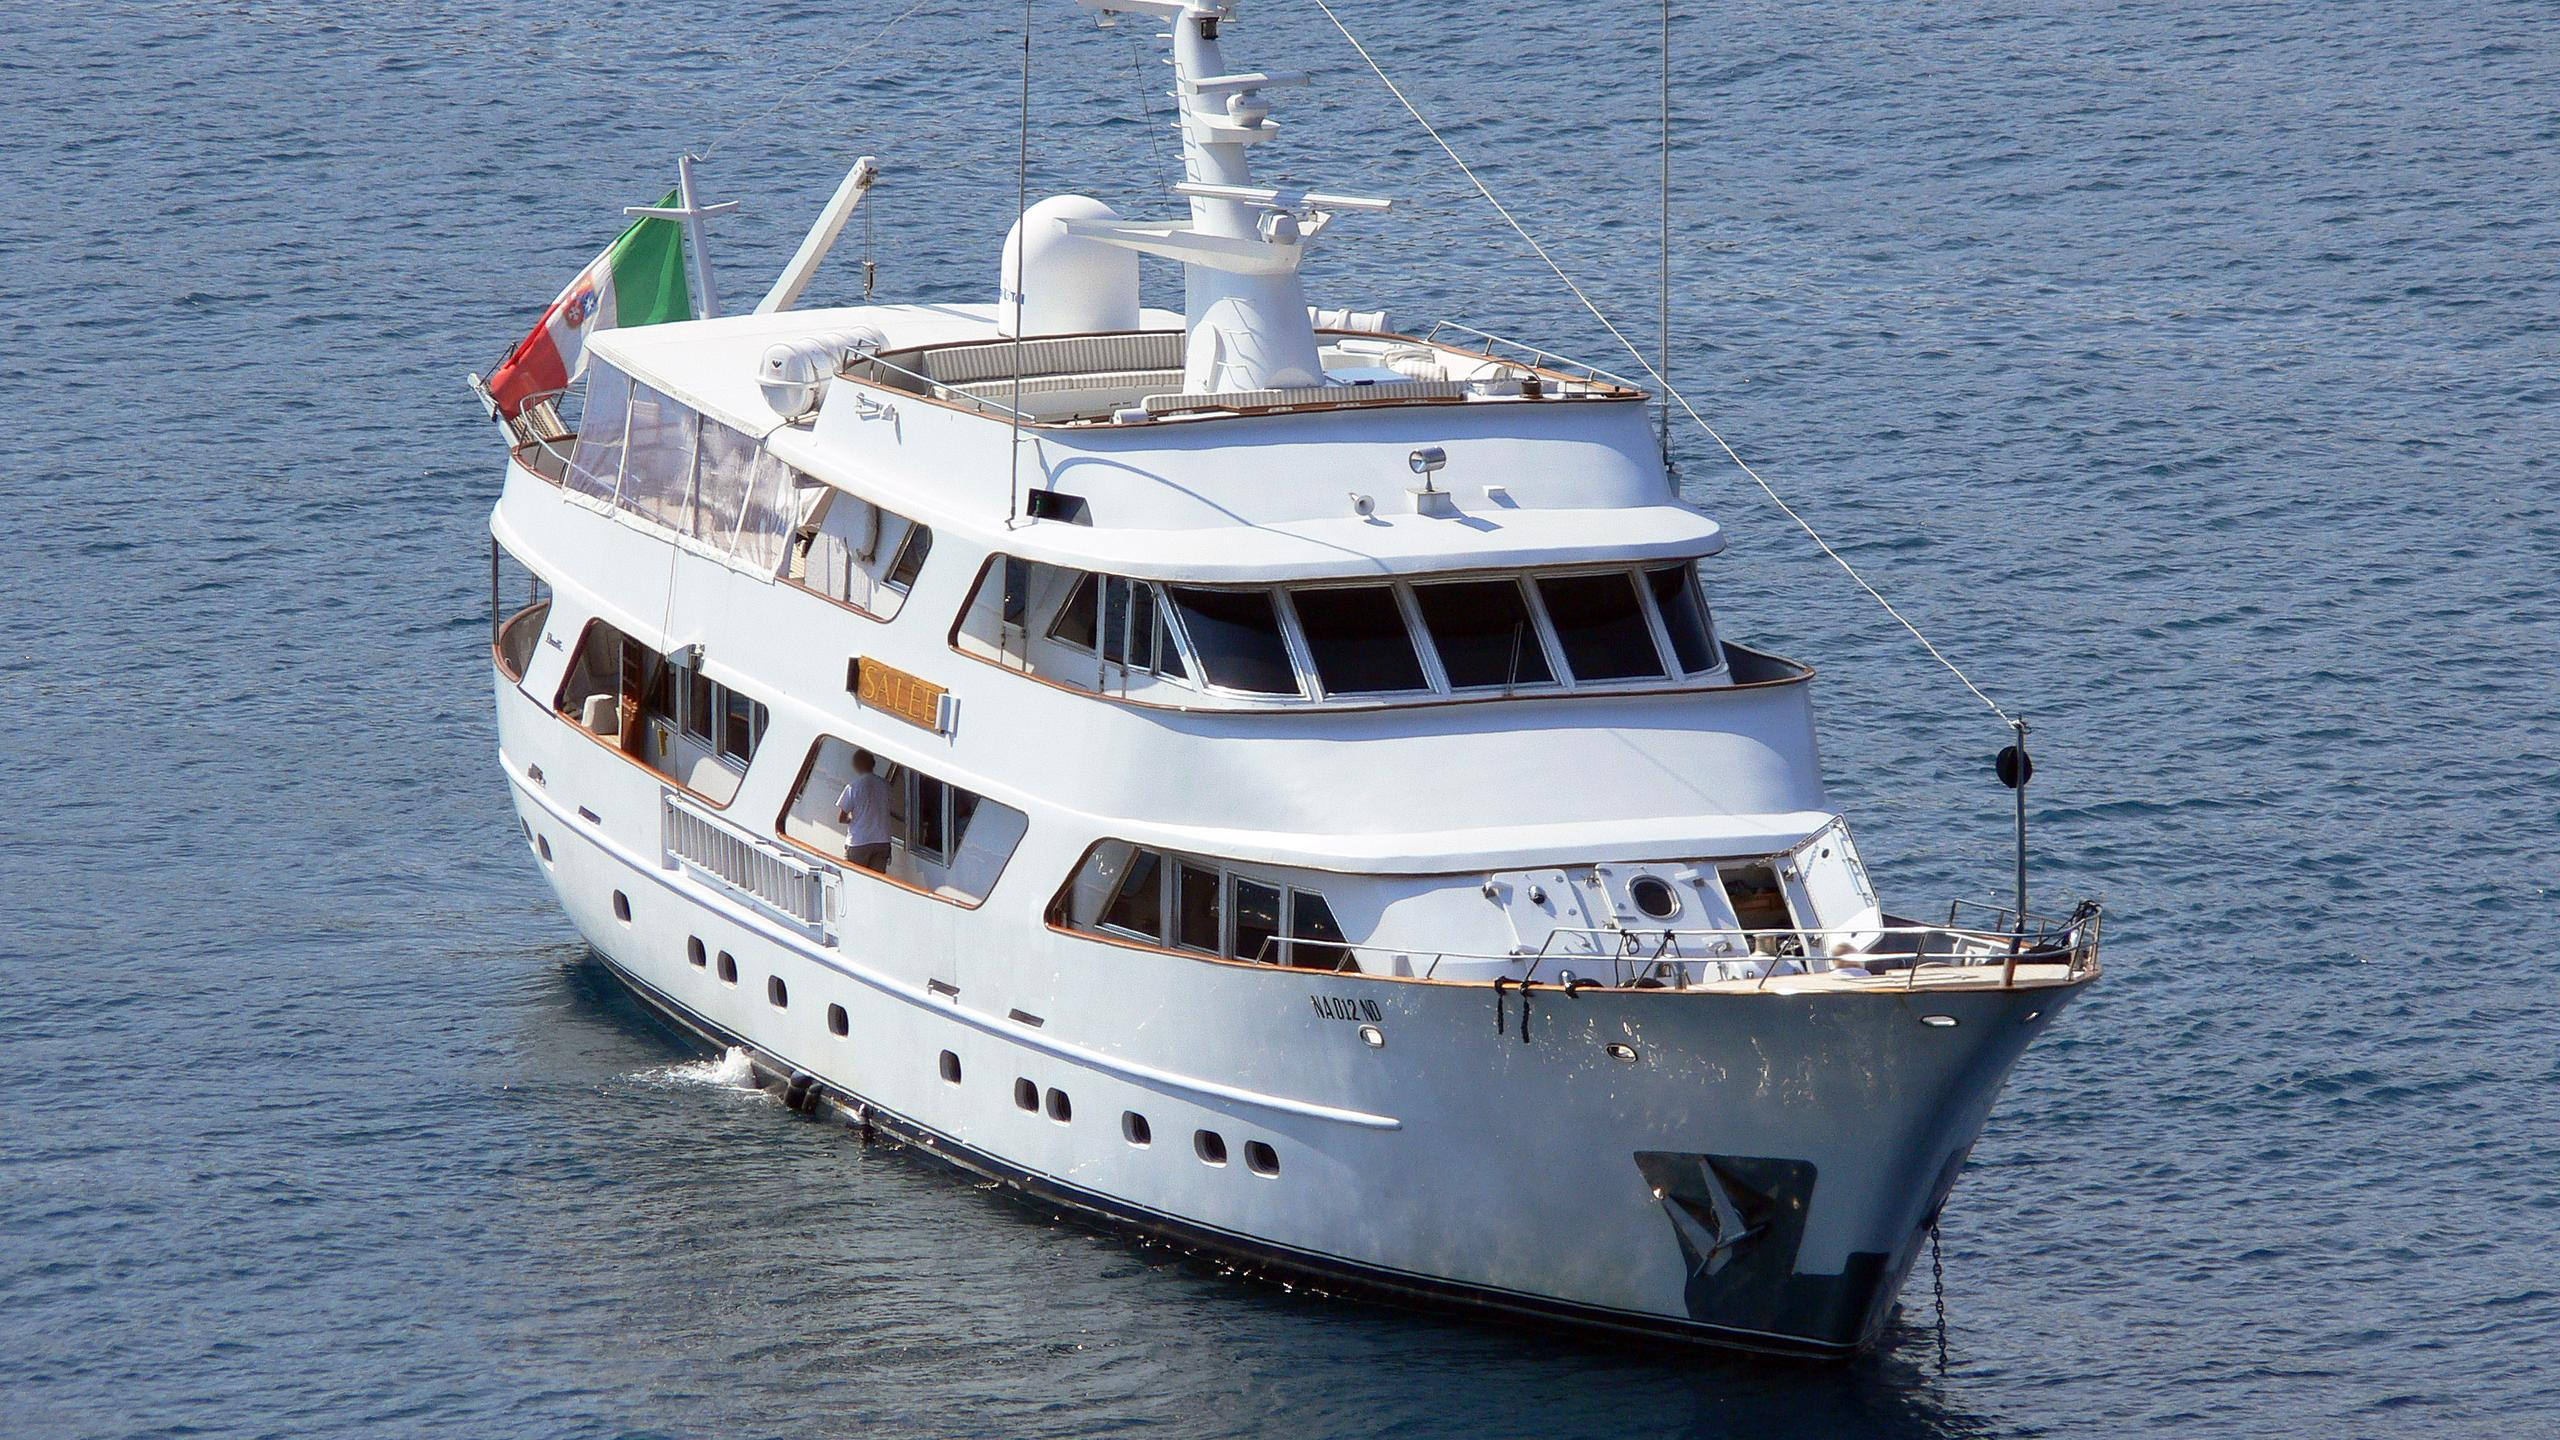 to-je-to-salee-motor-yacht-benetti-1981-35m-aerial-bow